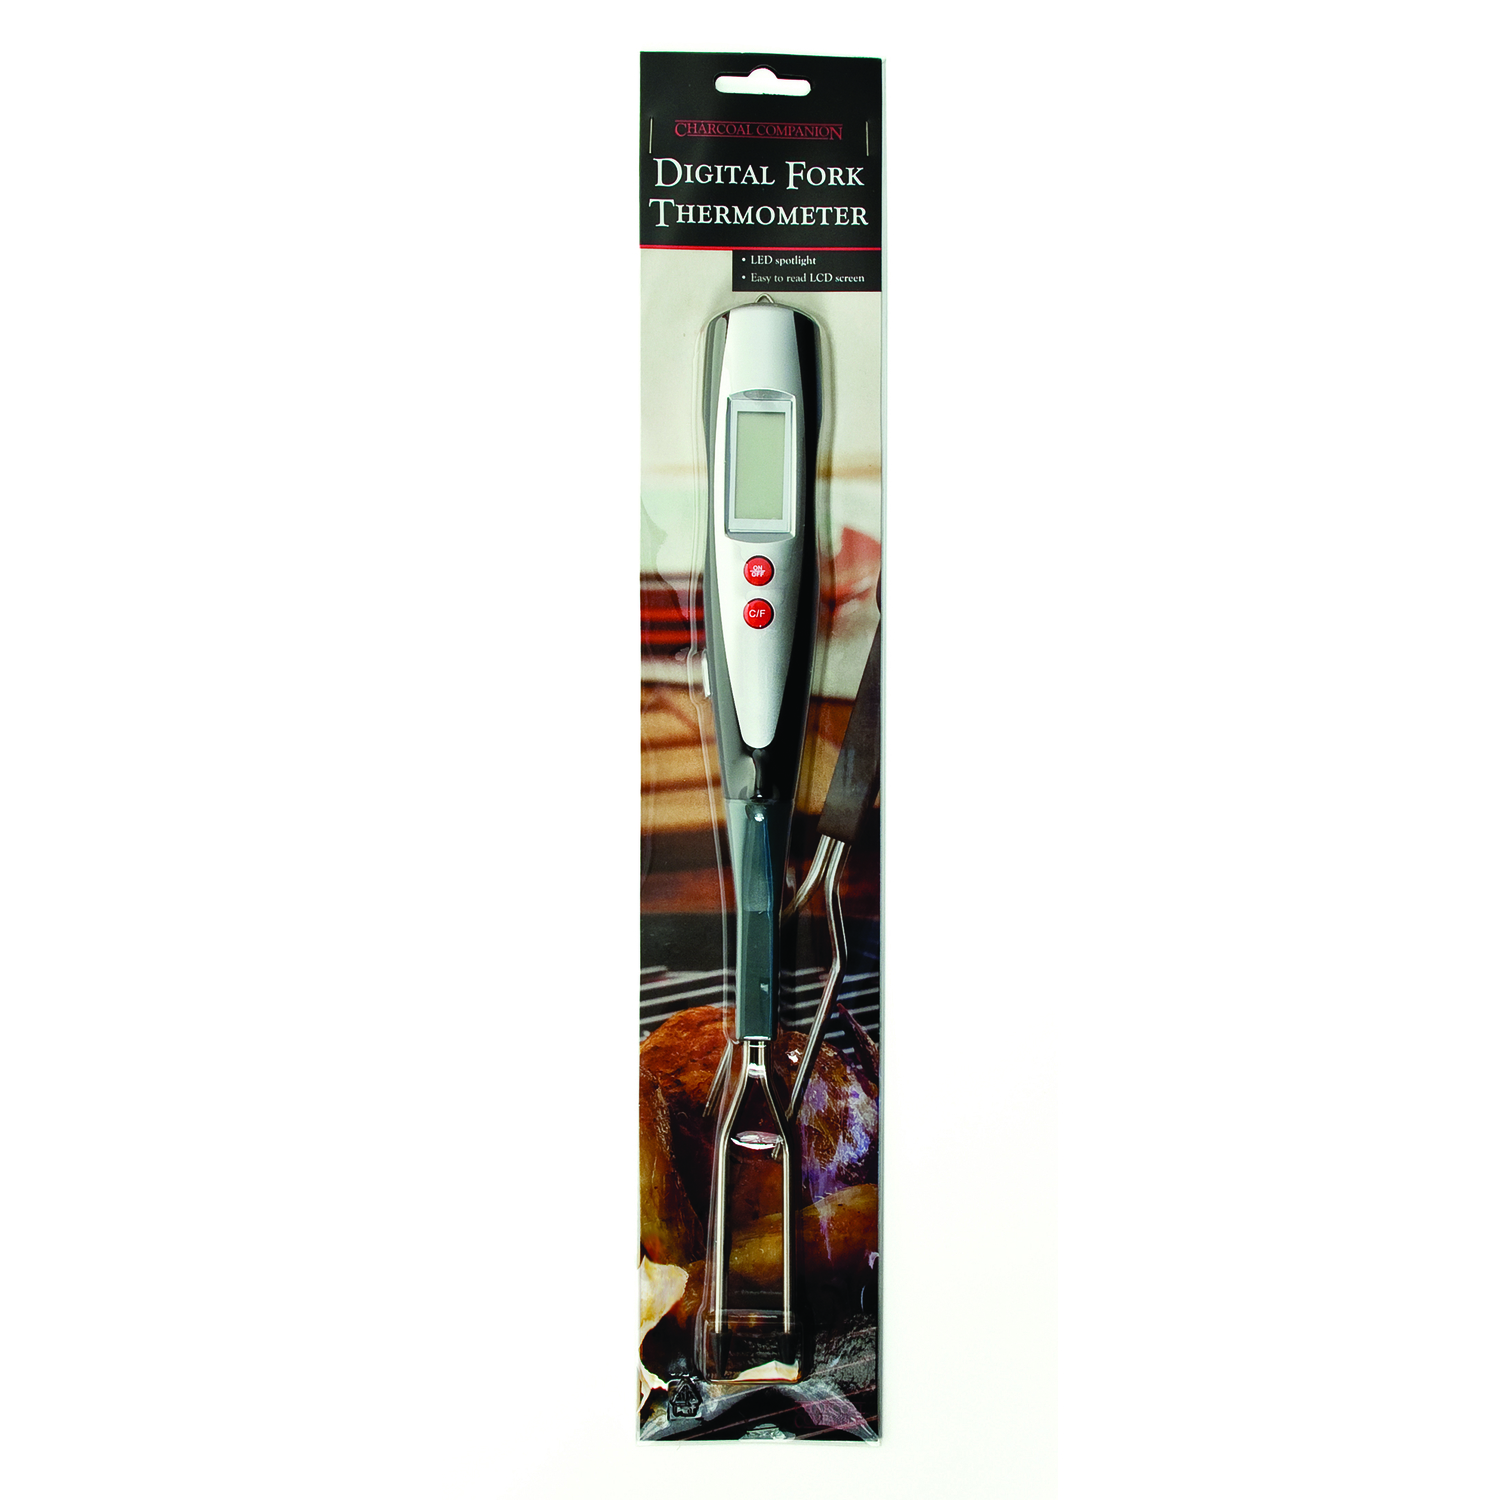 Charcoal Companion  Grill Fork Thermometer  1.69 in. W x 1.22 in. L x 14.96 in. H Stainless Steel